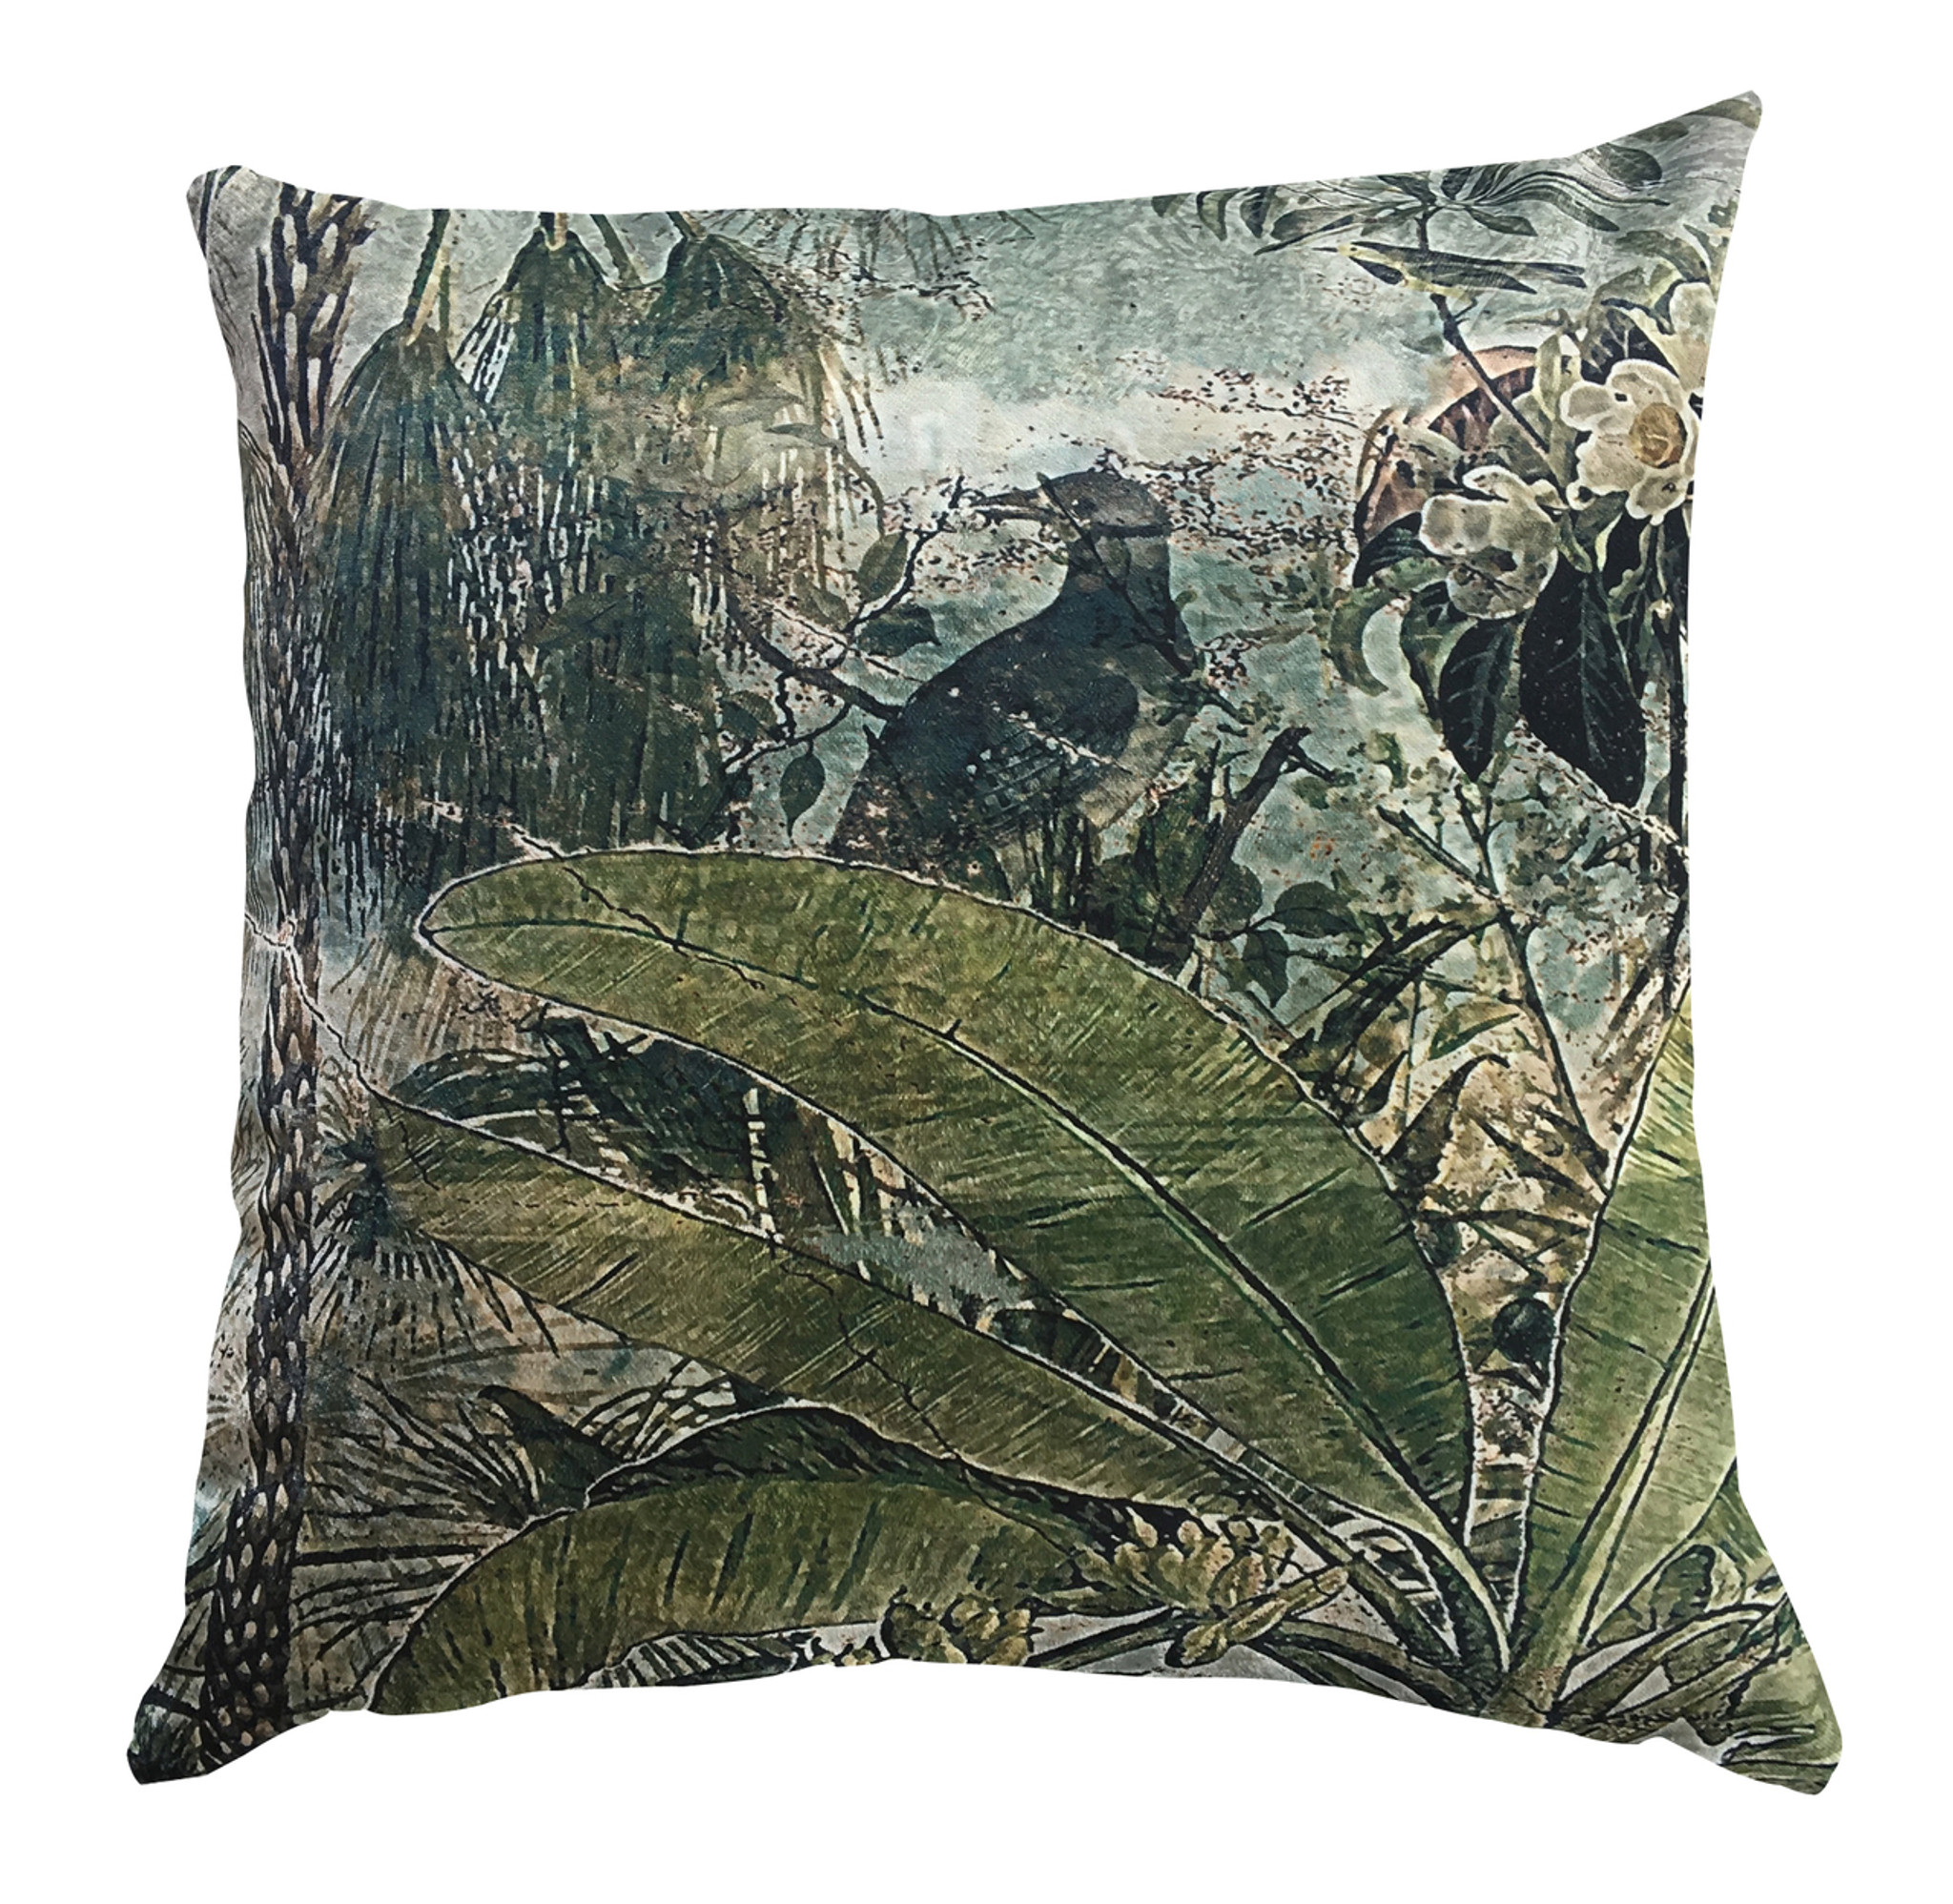 Outdoor Cushion Cover - Fading Forest with Bird